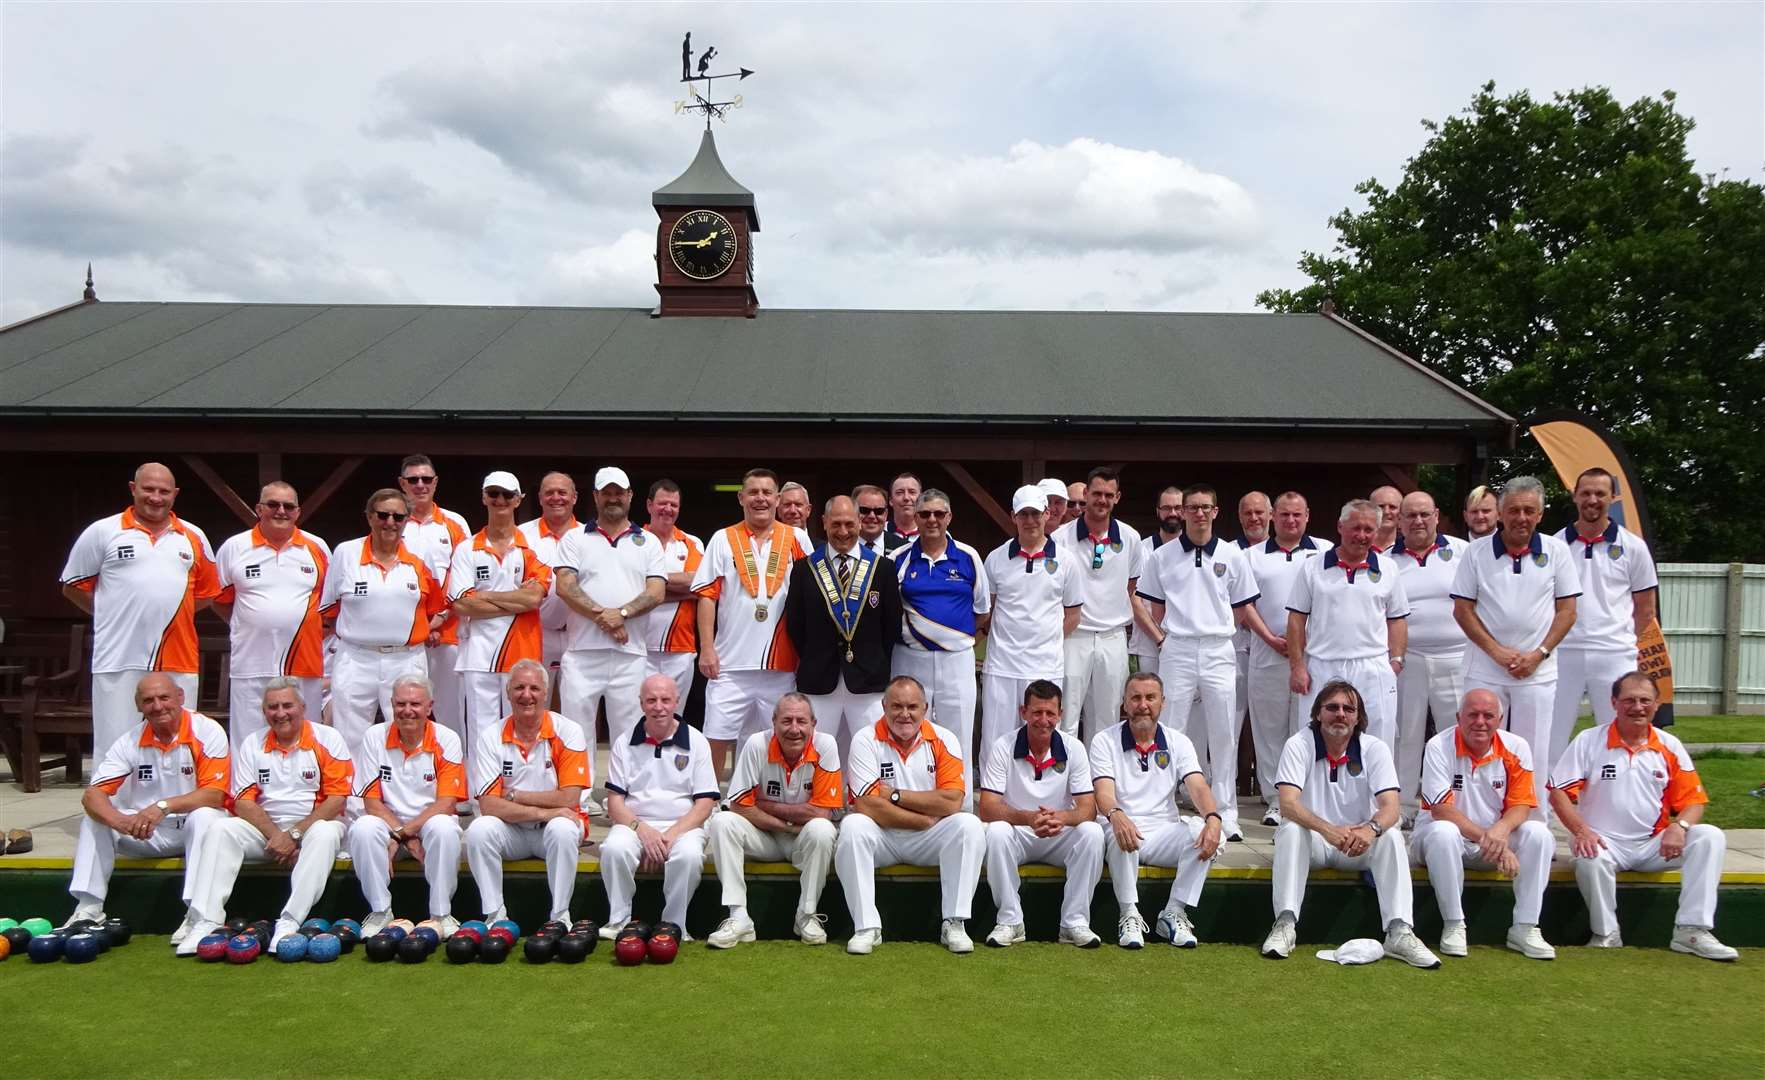 The Northants Federation Newton Trophy team (in orange shirts) who competed against Suffolk and Lincs. (12148425)